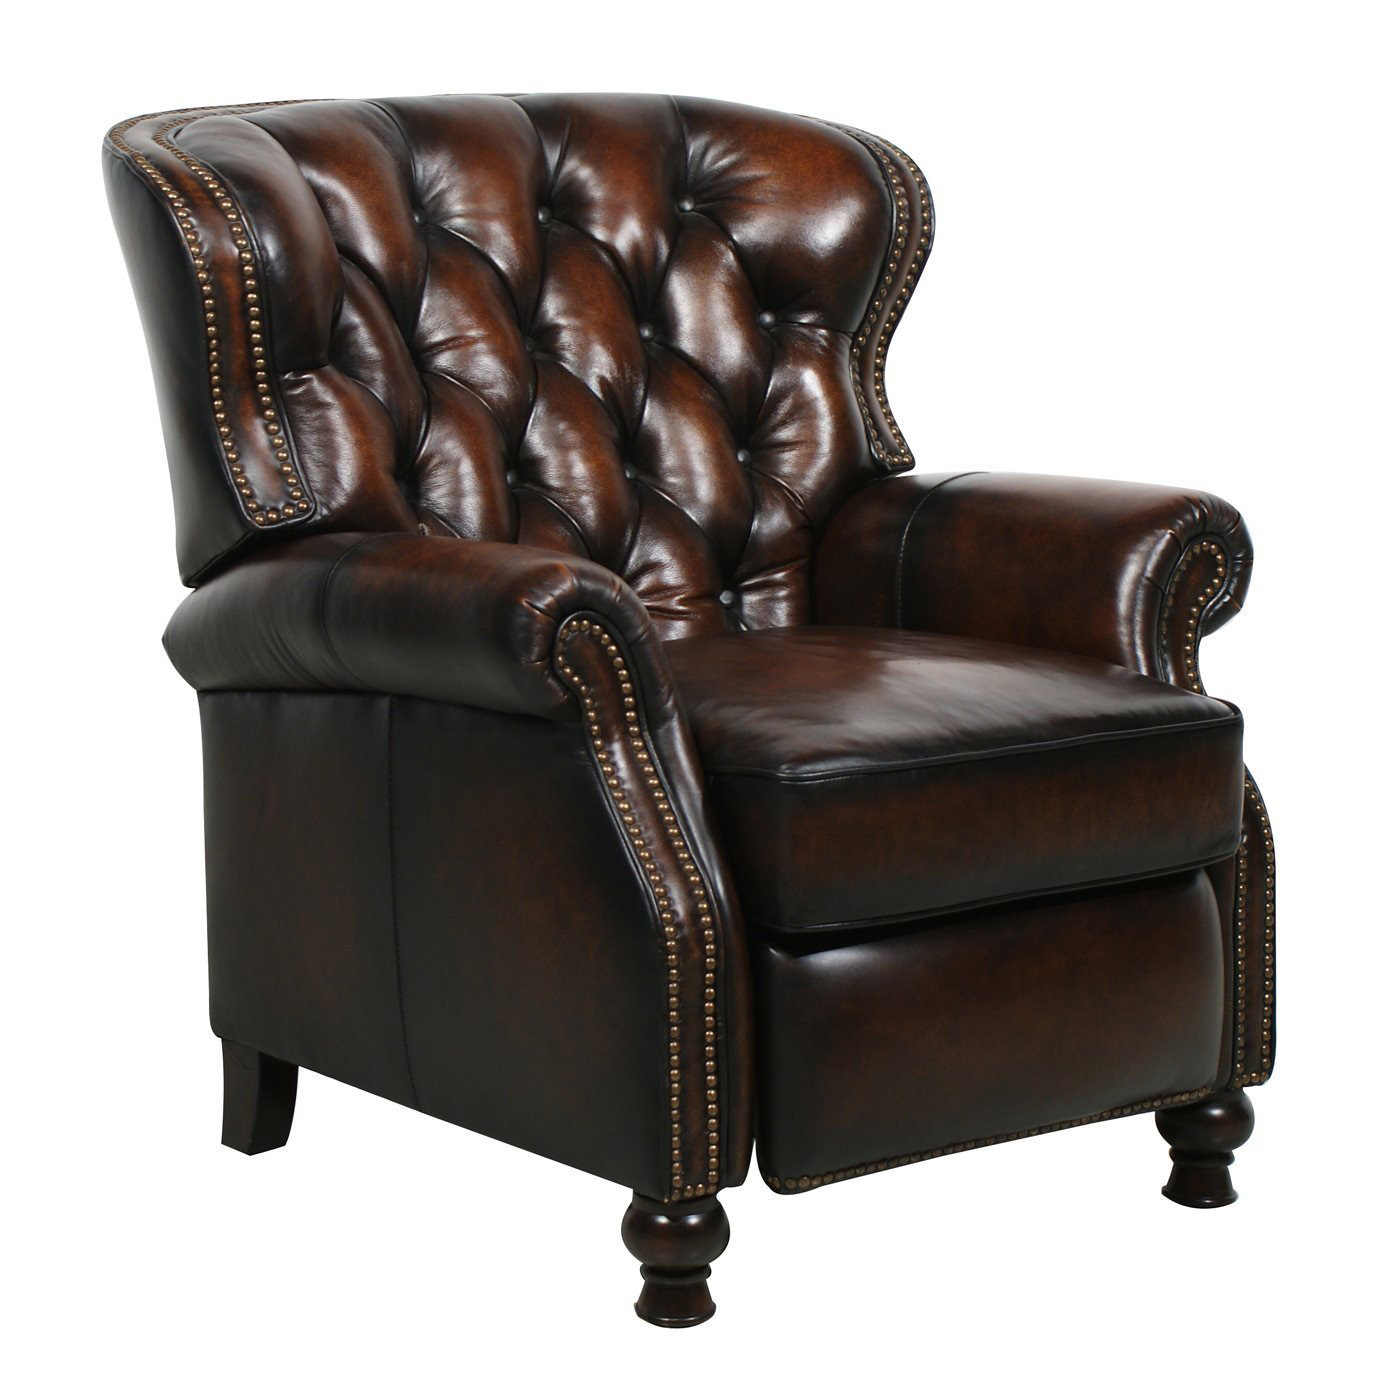 Barcalounger Presidential II Leather Recliner Chair ...